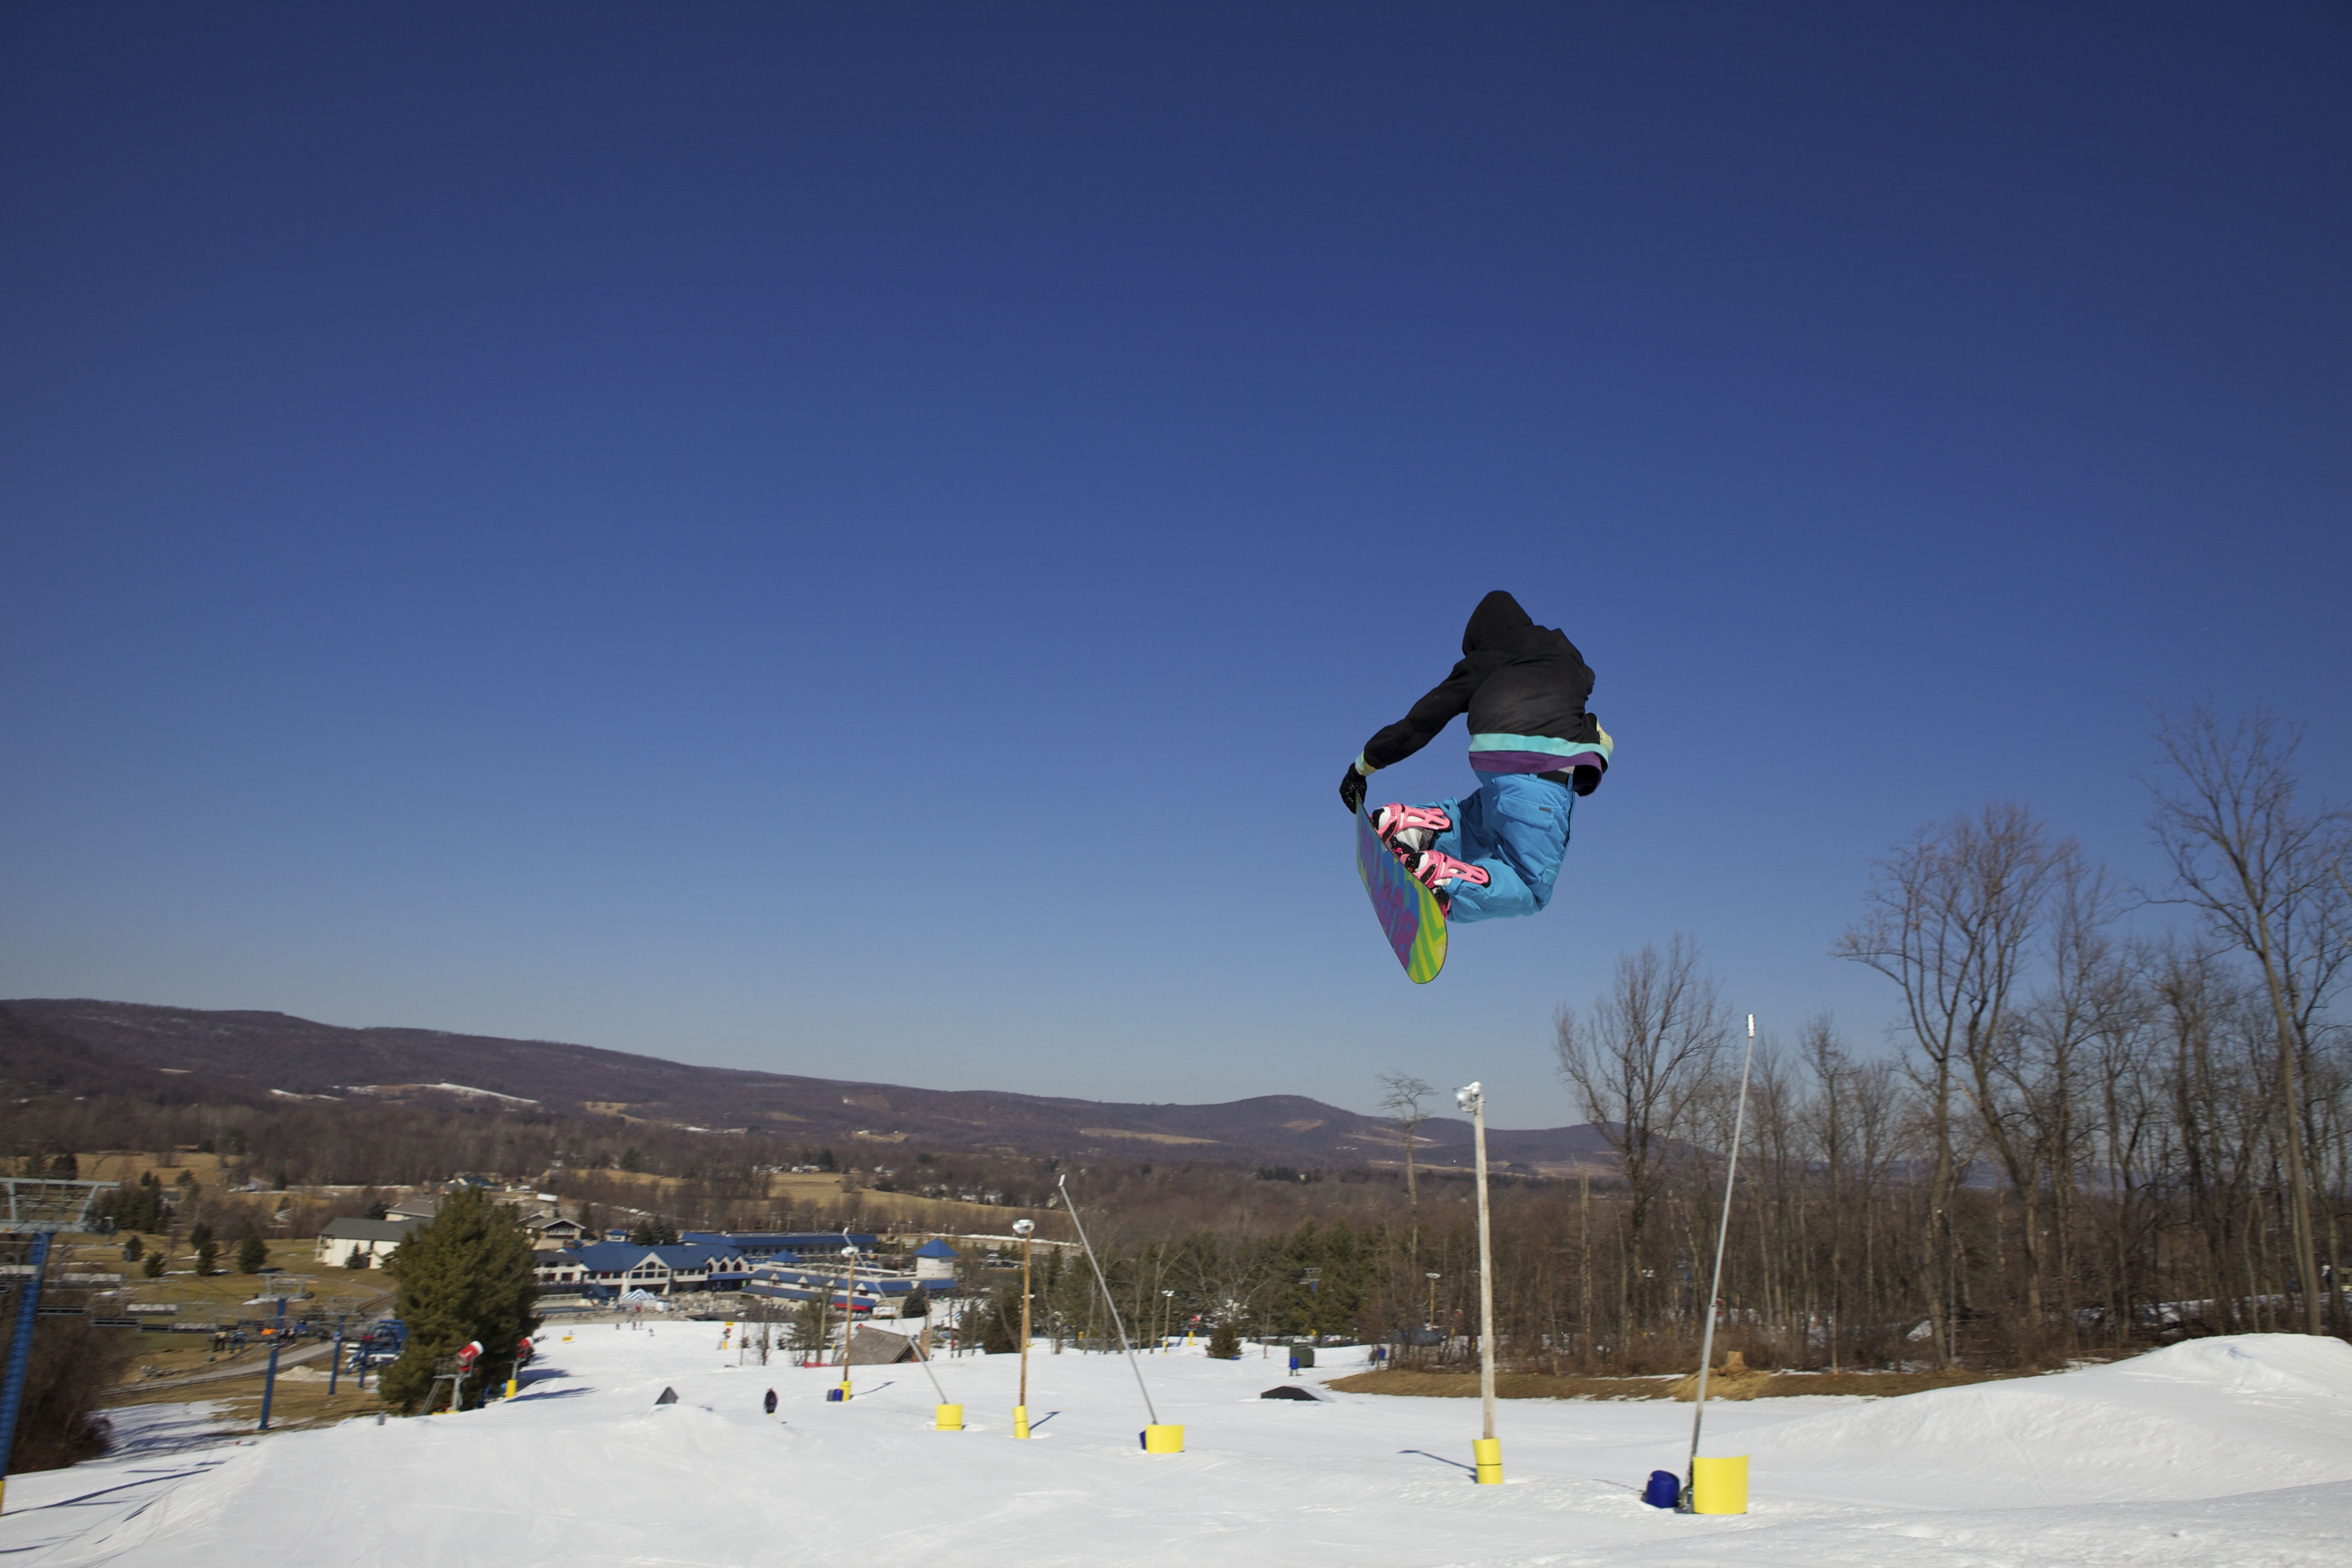 Liberty Has All Kinds Of Rails And Boxes In The Terrain Park Mountain Resort Liberty Mountain Skiing Snowboarding